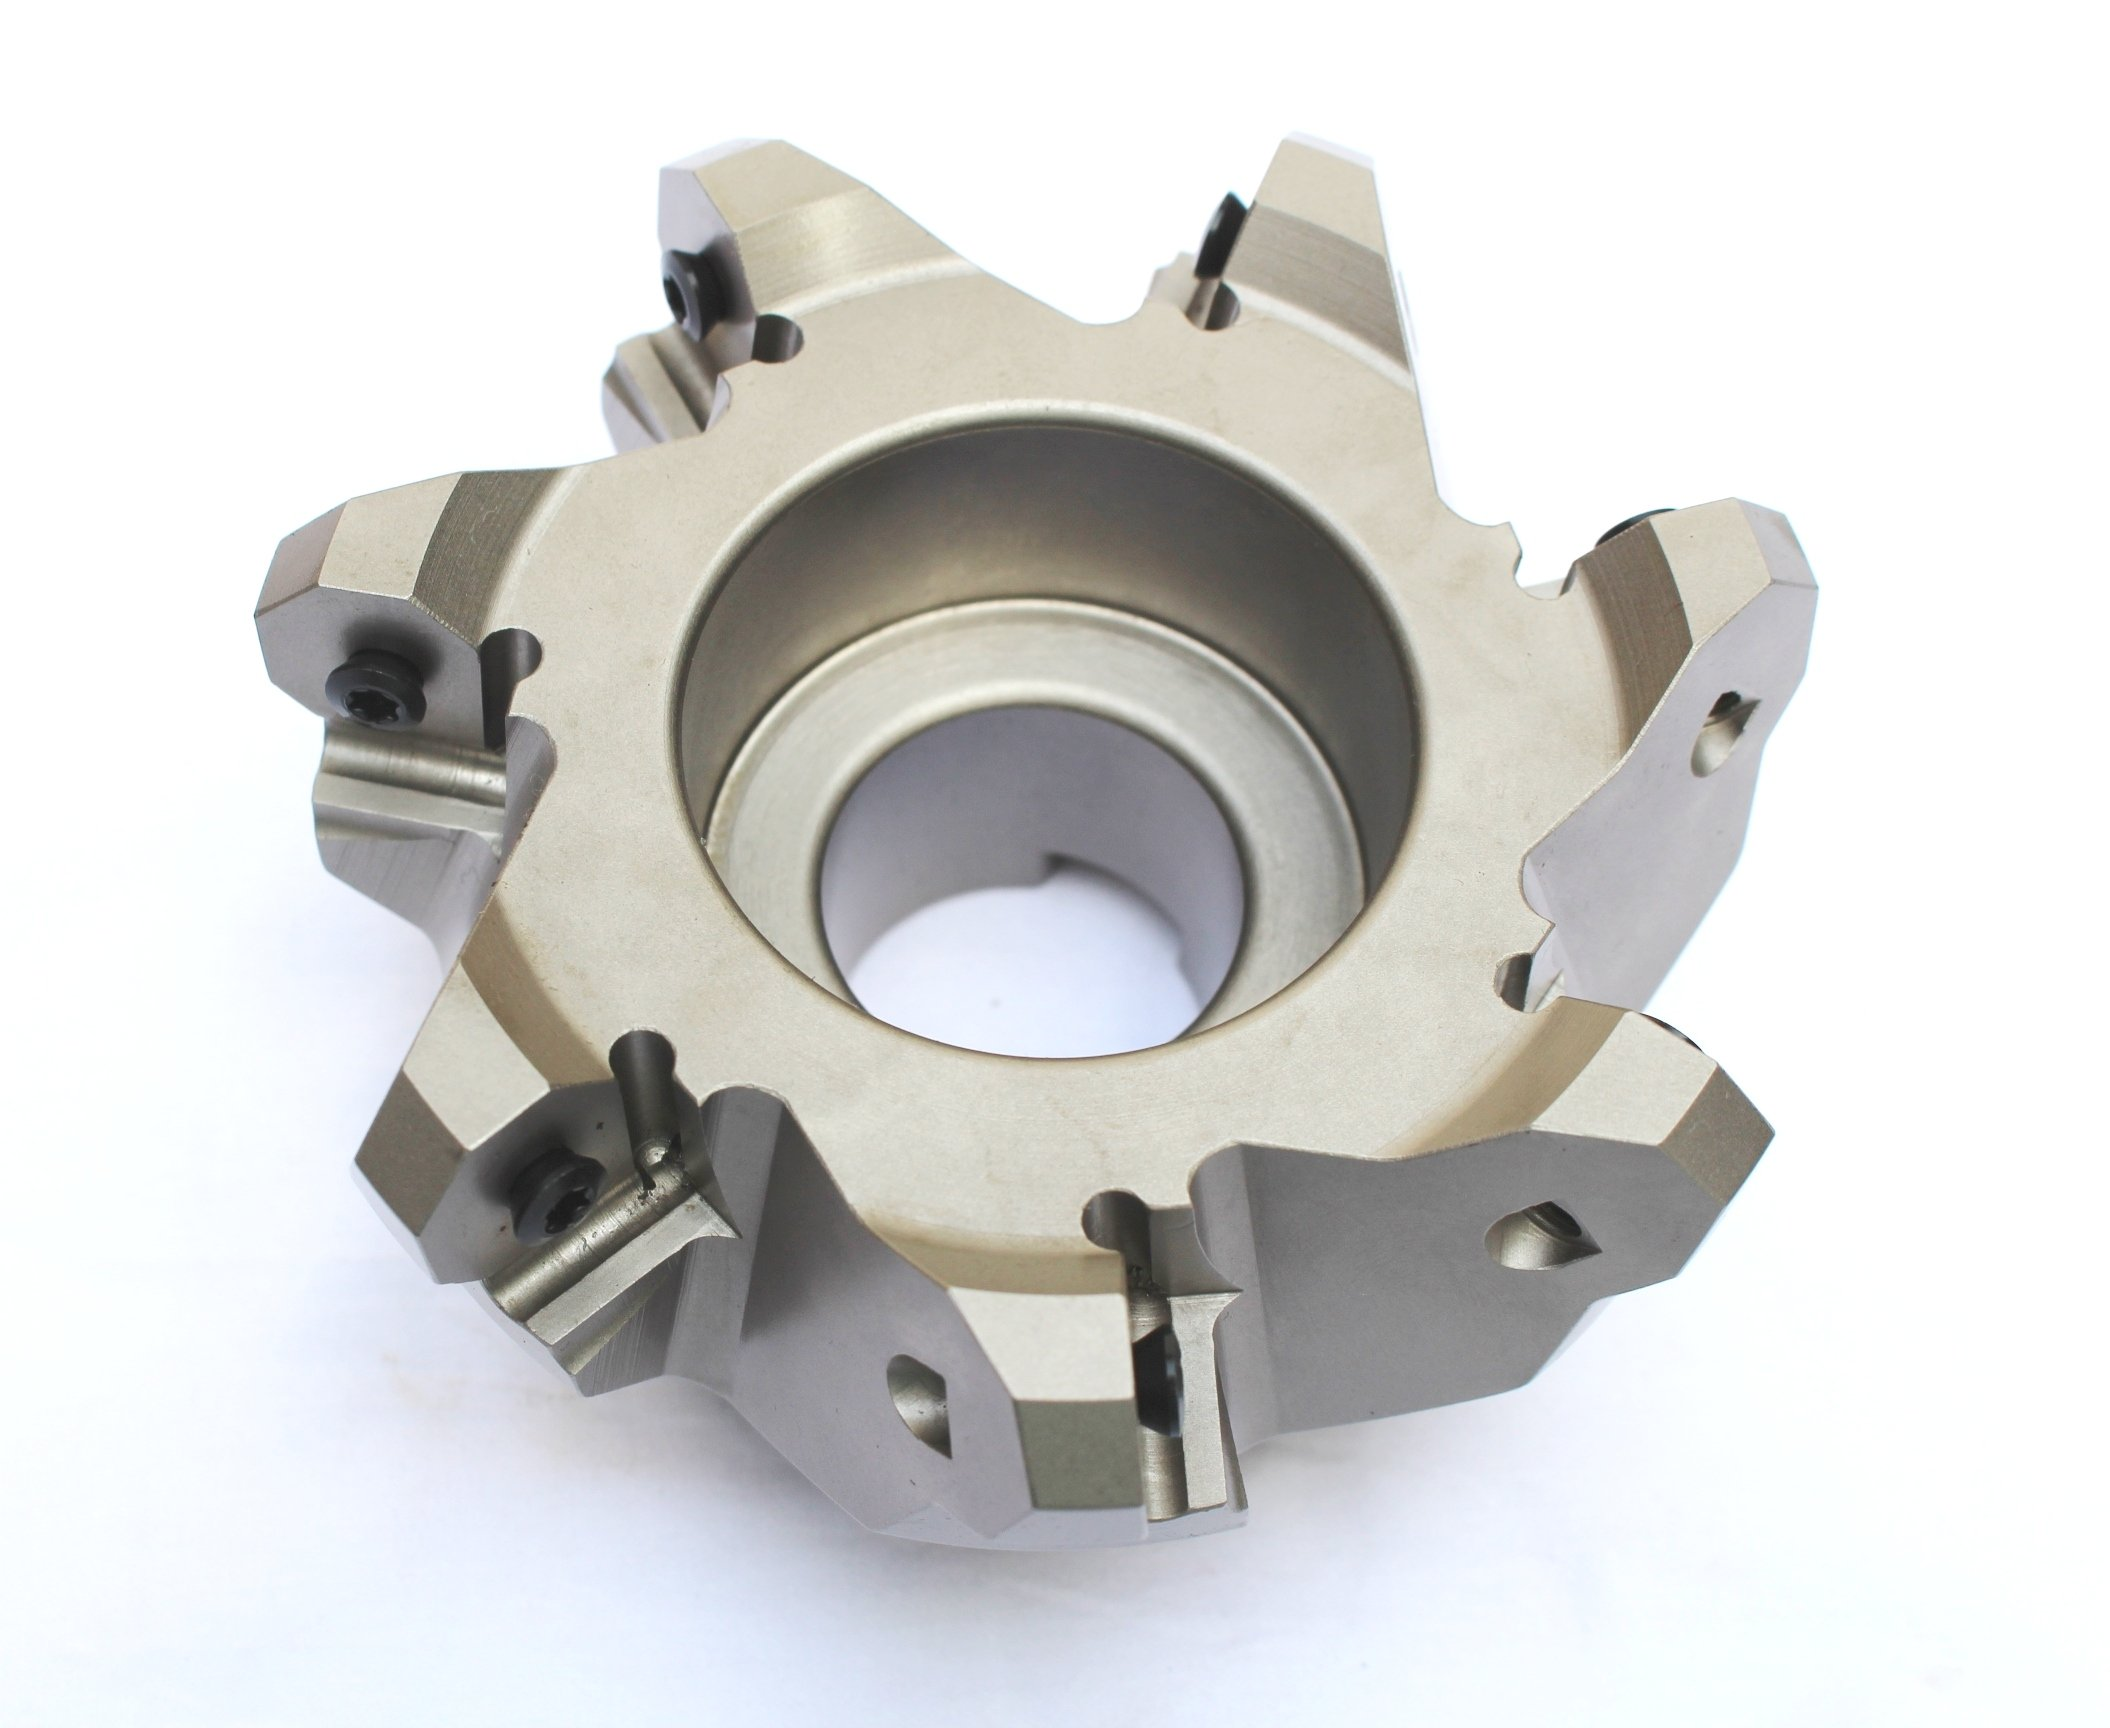 HHIP 2068-4000 4'' x 1-1/4'' Bore 45 Degree Octagon 7 Insert Index able Face Mill, 2-1/2'' OAL